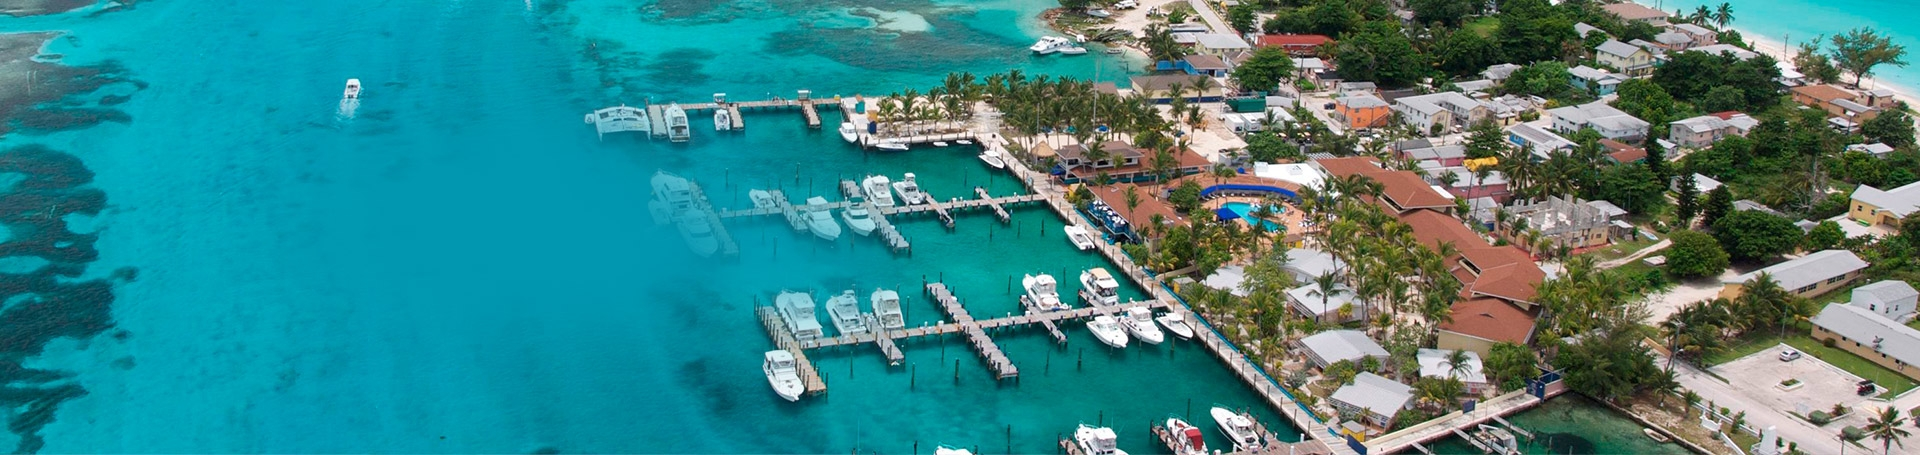 Bimini Big Game Club Resort & Marina in Alice Town, 0